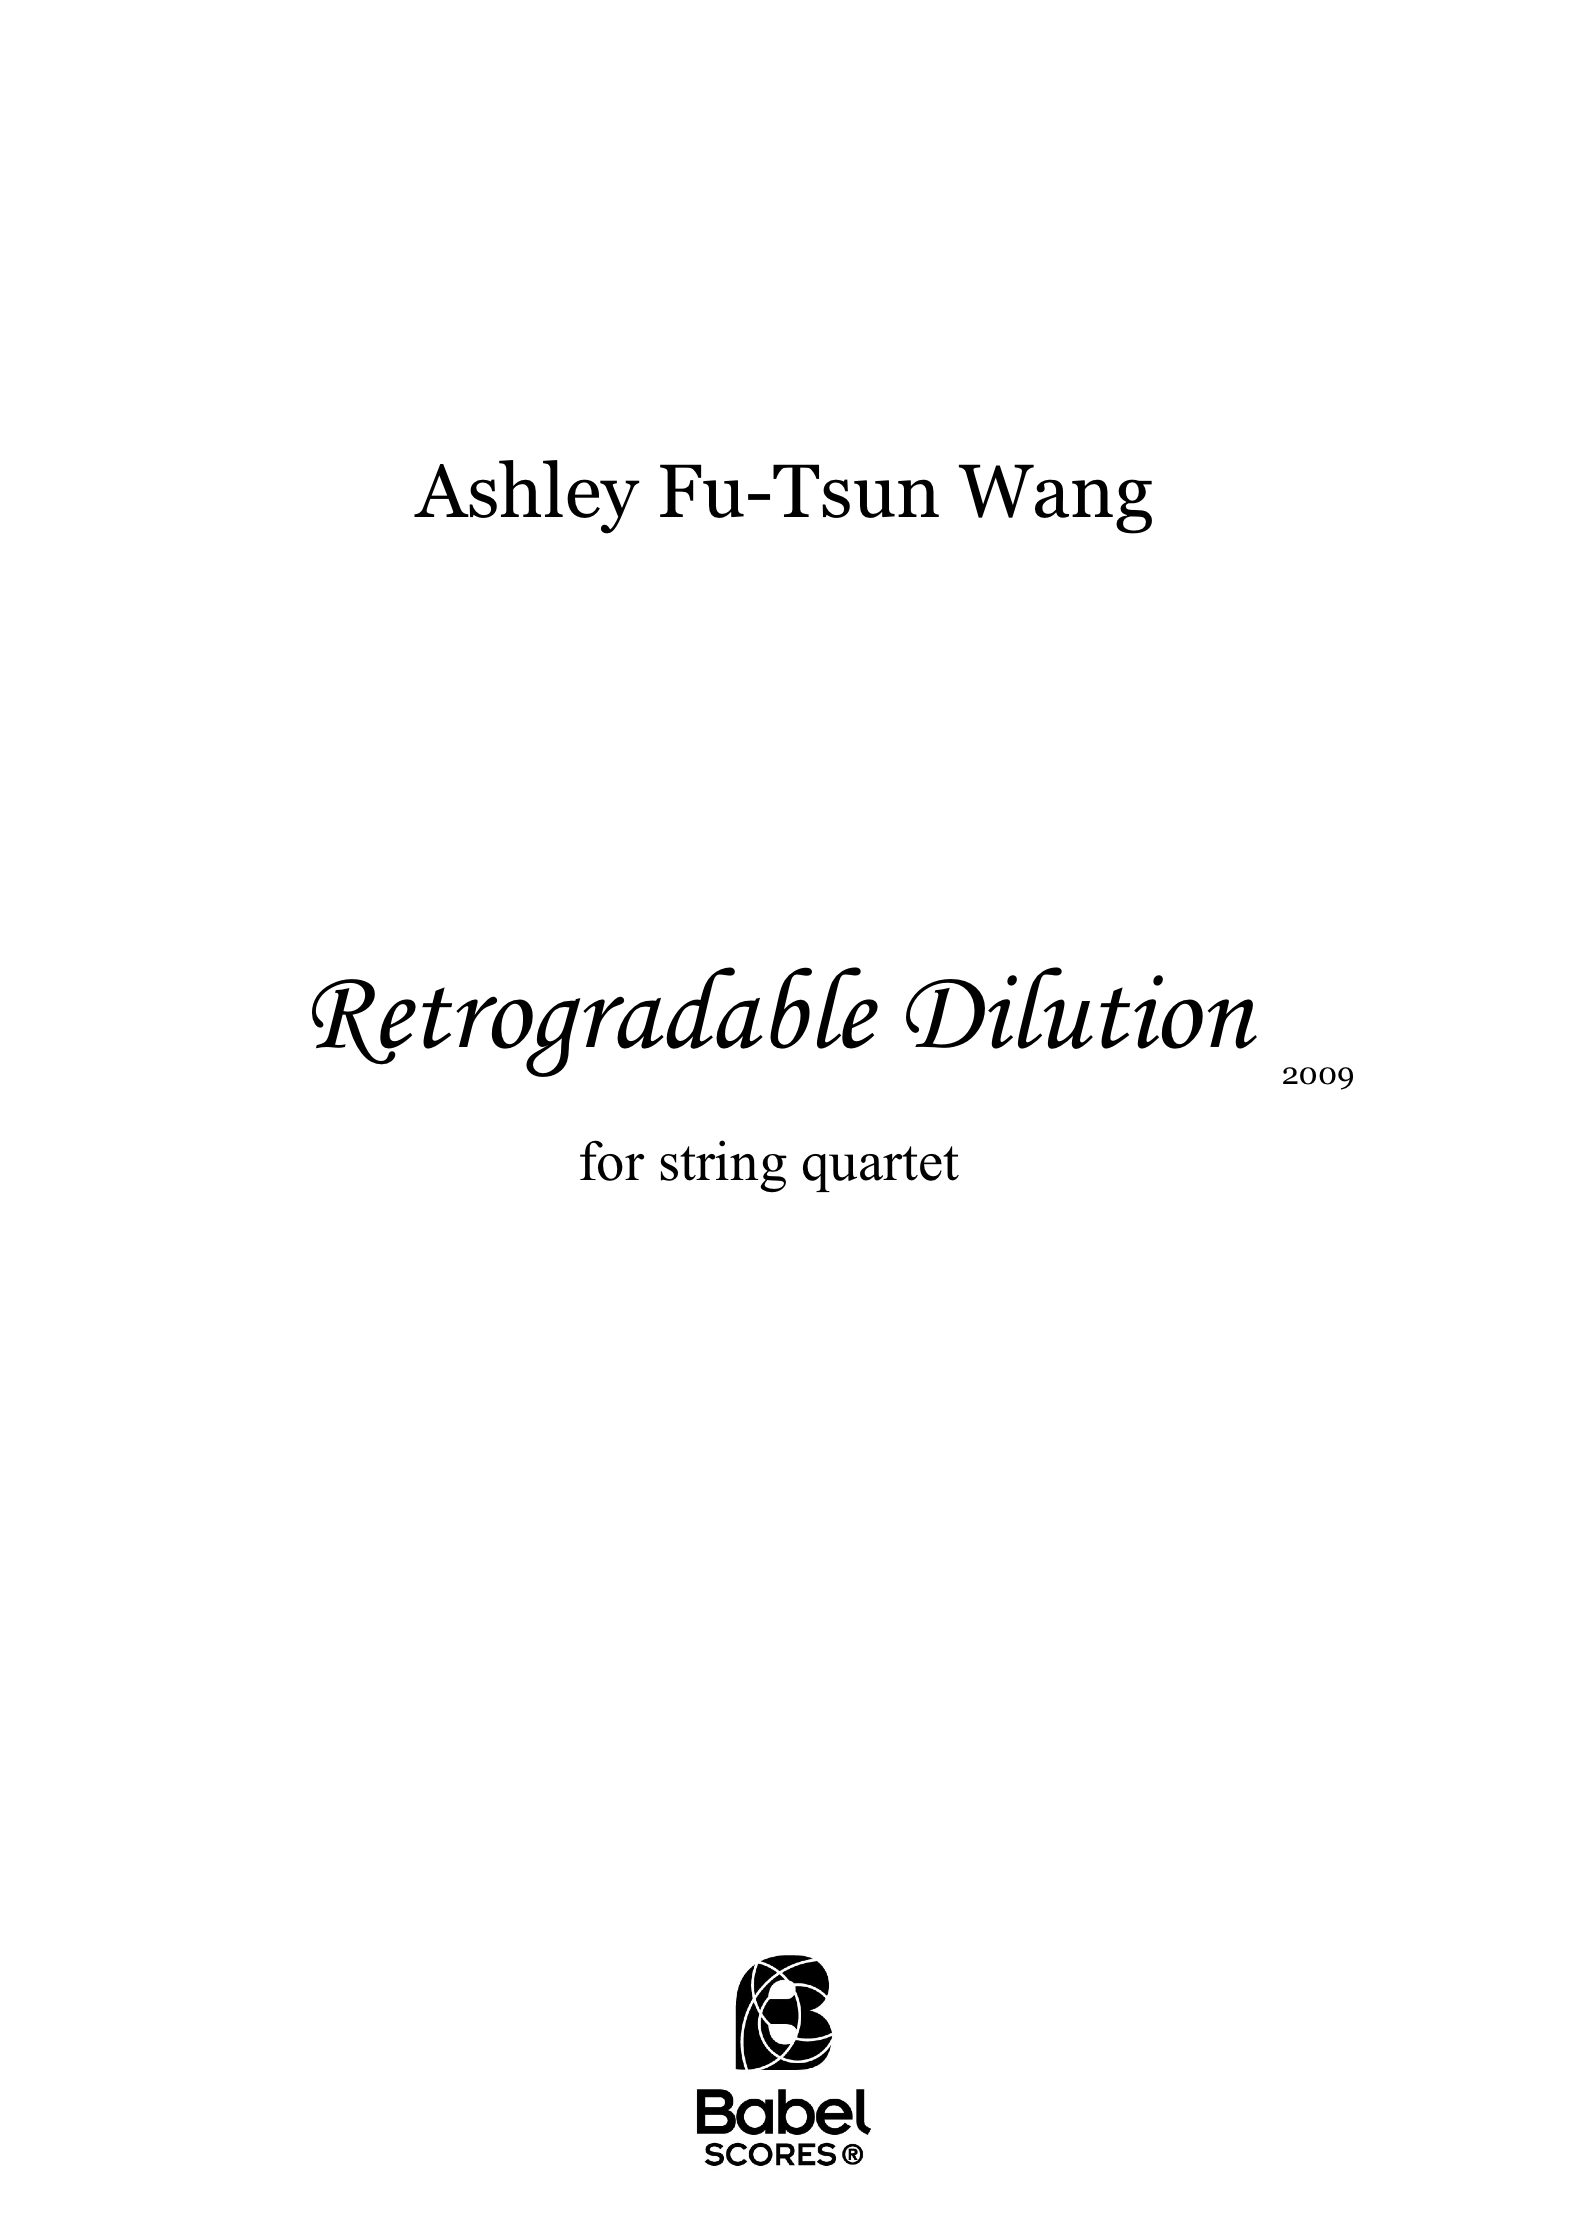 Retrogradable Dilution Ashley Fu Tsun Wang A4 z